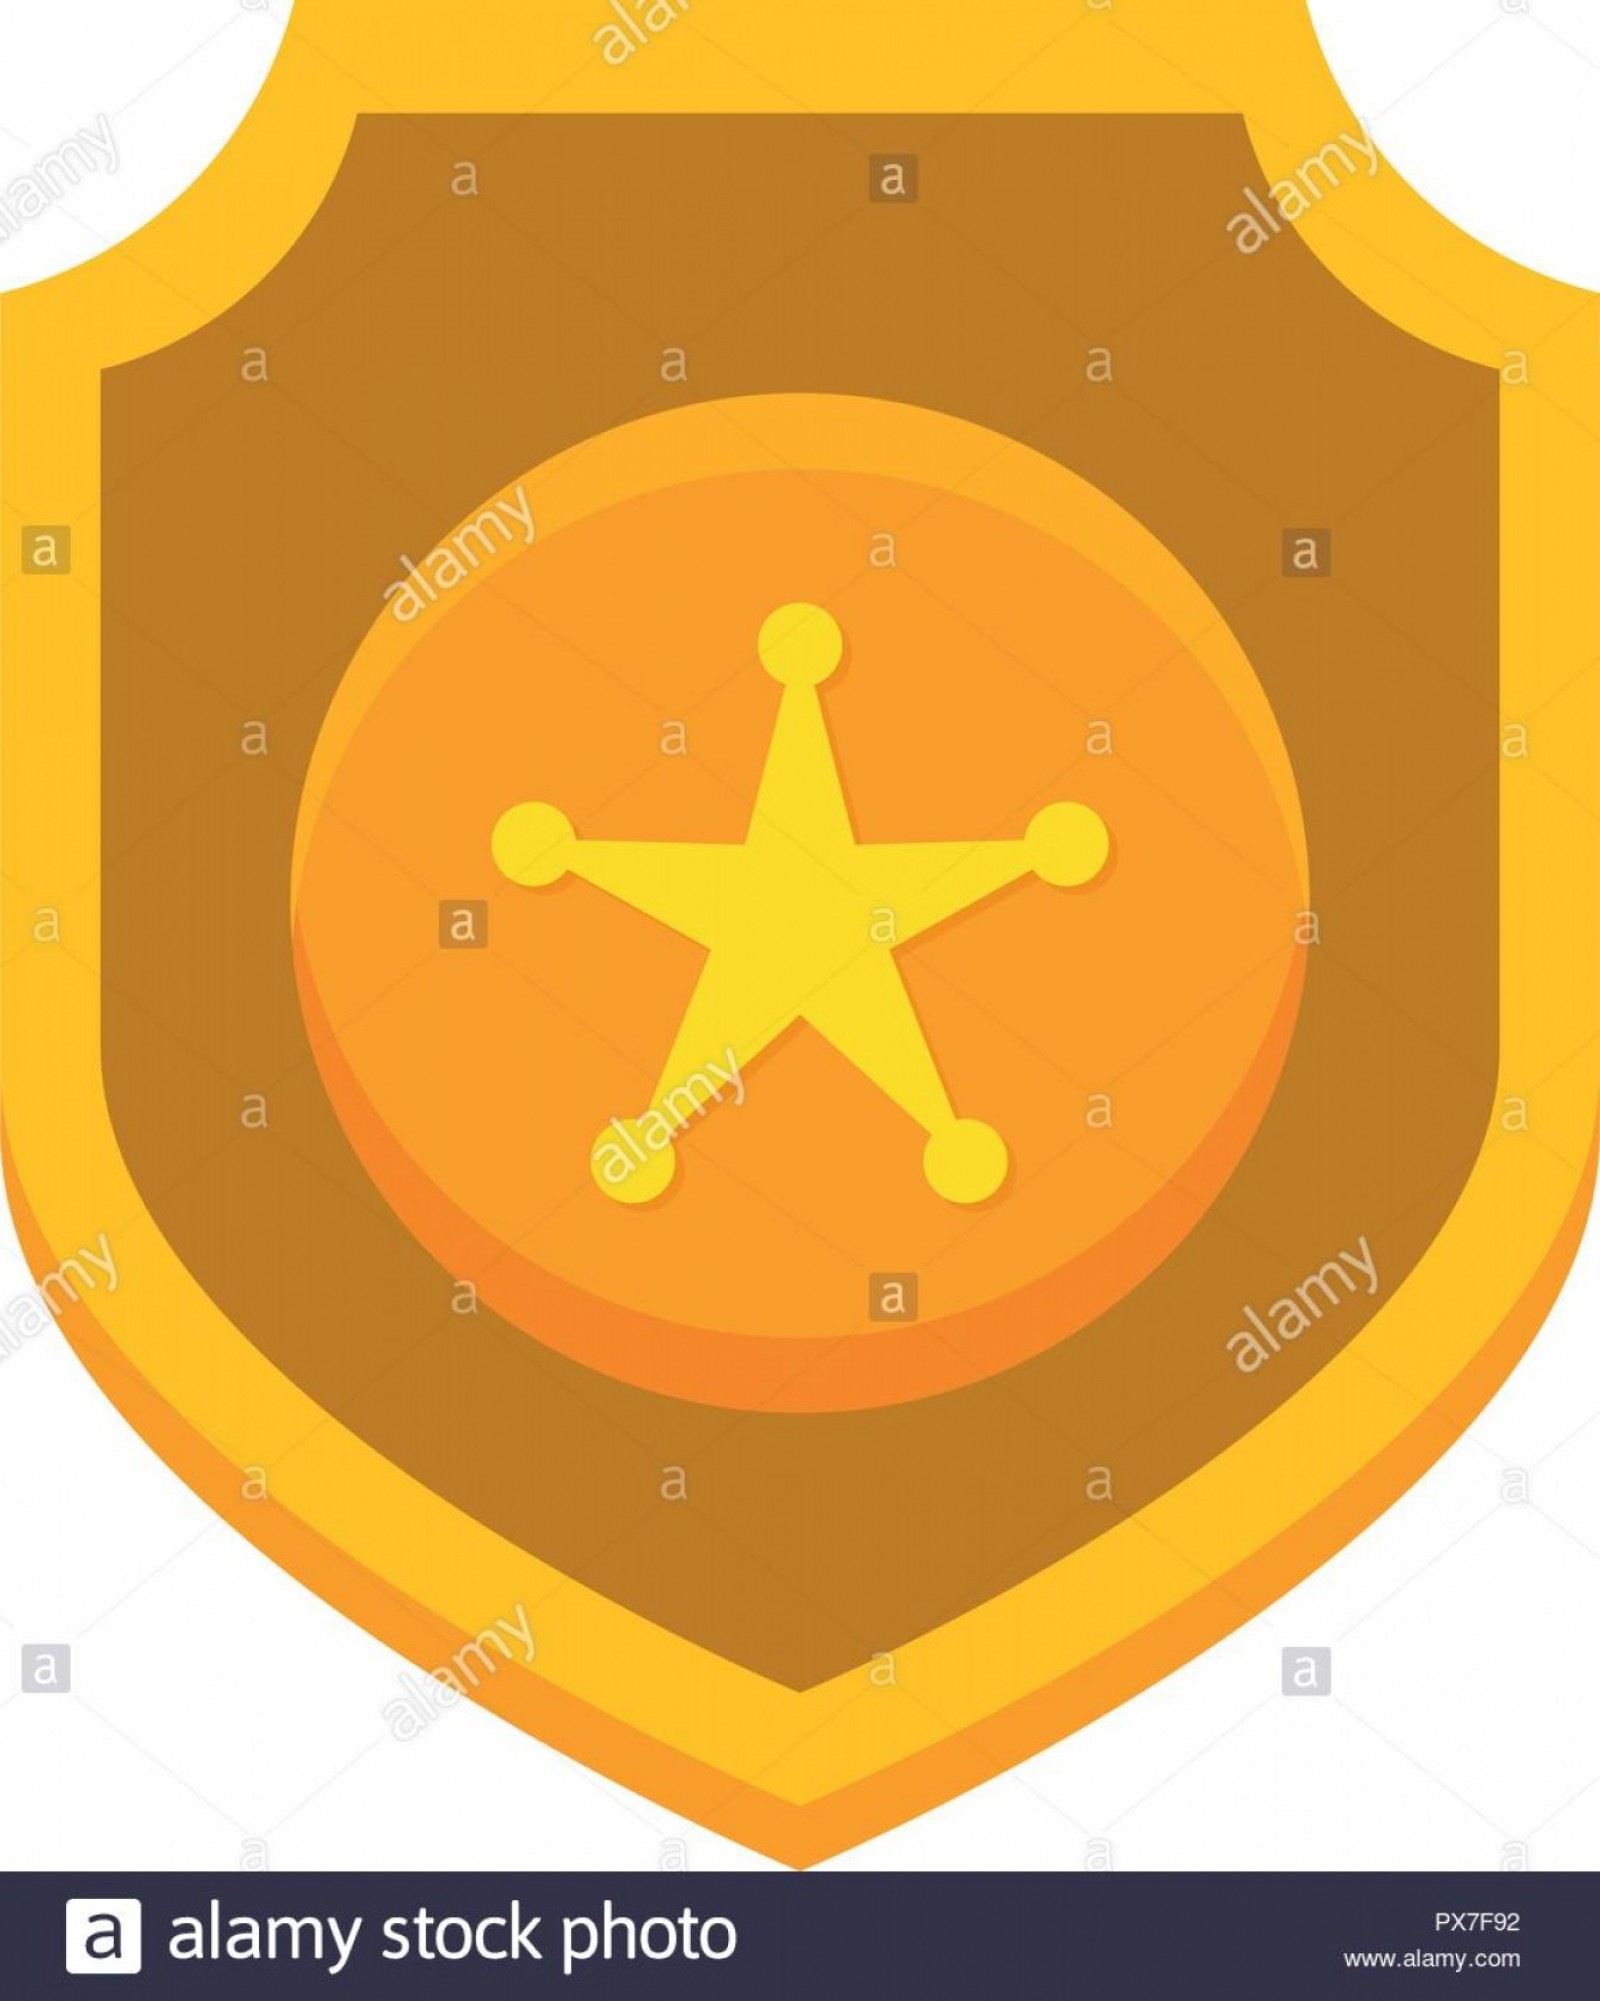 Star Badge Vector: Shield With Star Police Badge Vector Illustration Design Image